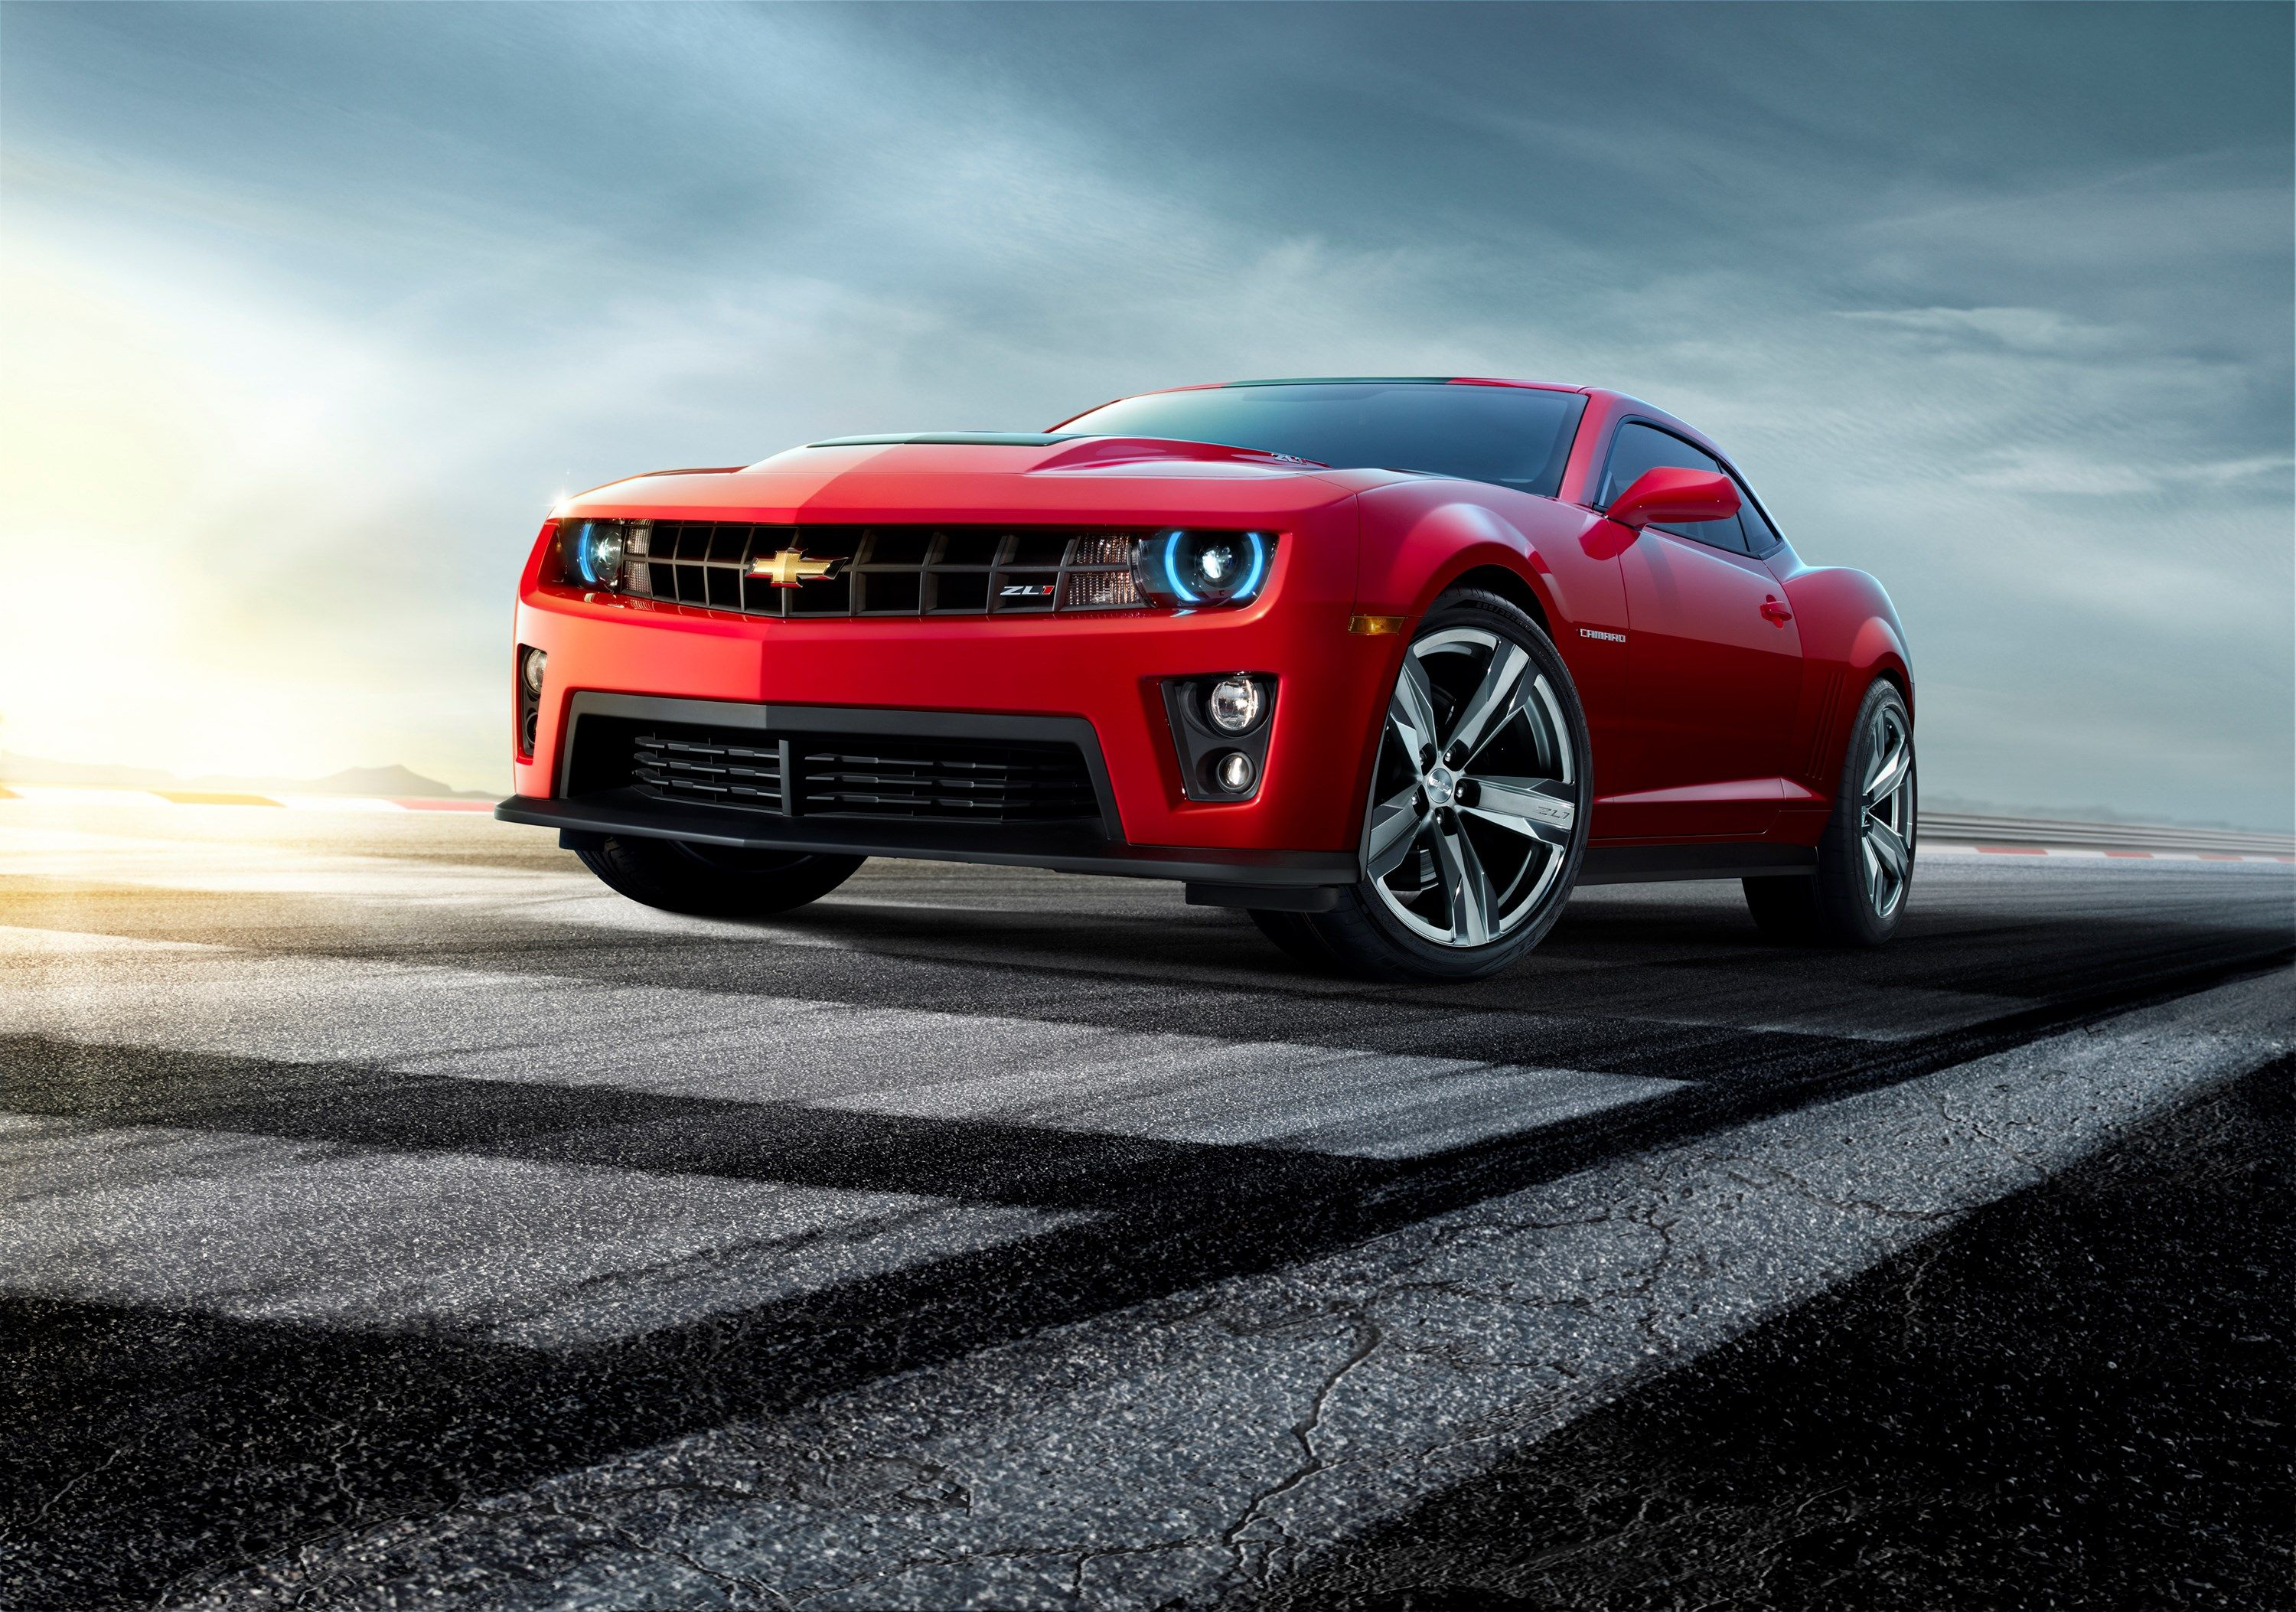 Hq res chevrolet camaro zl1 backround chevrolet camaro zl1 category